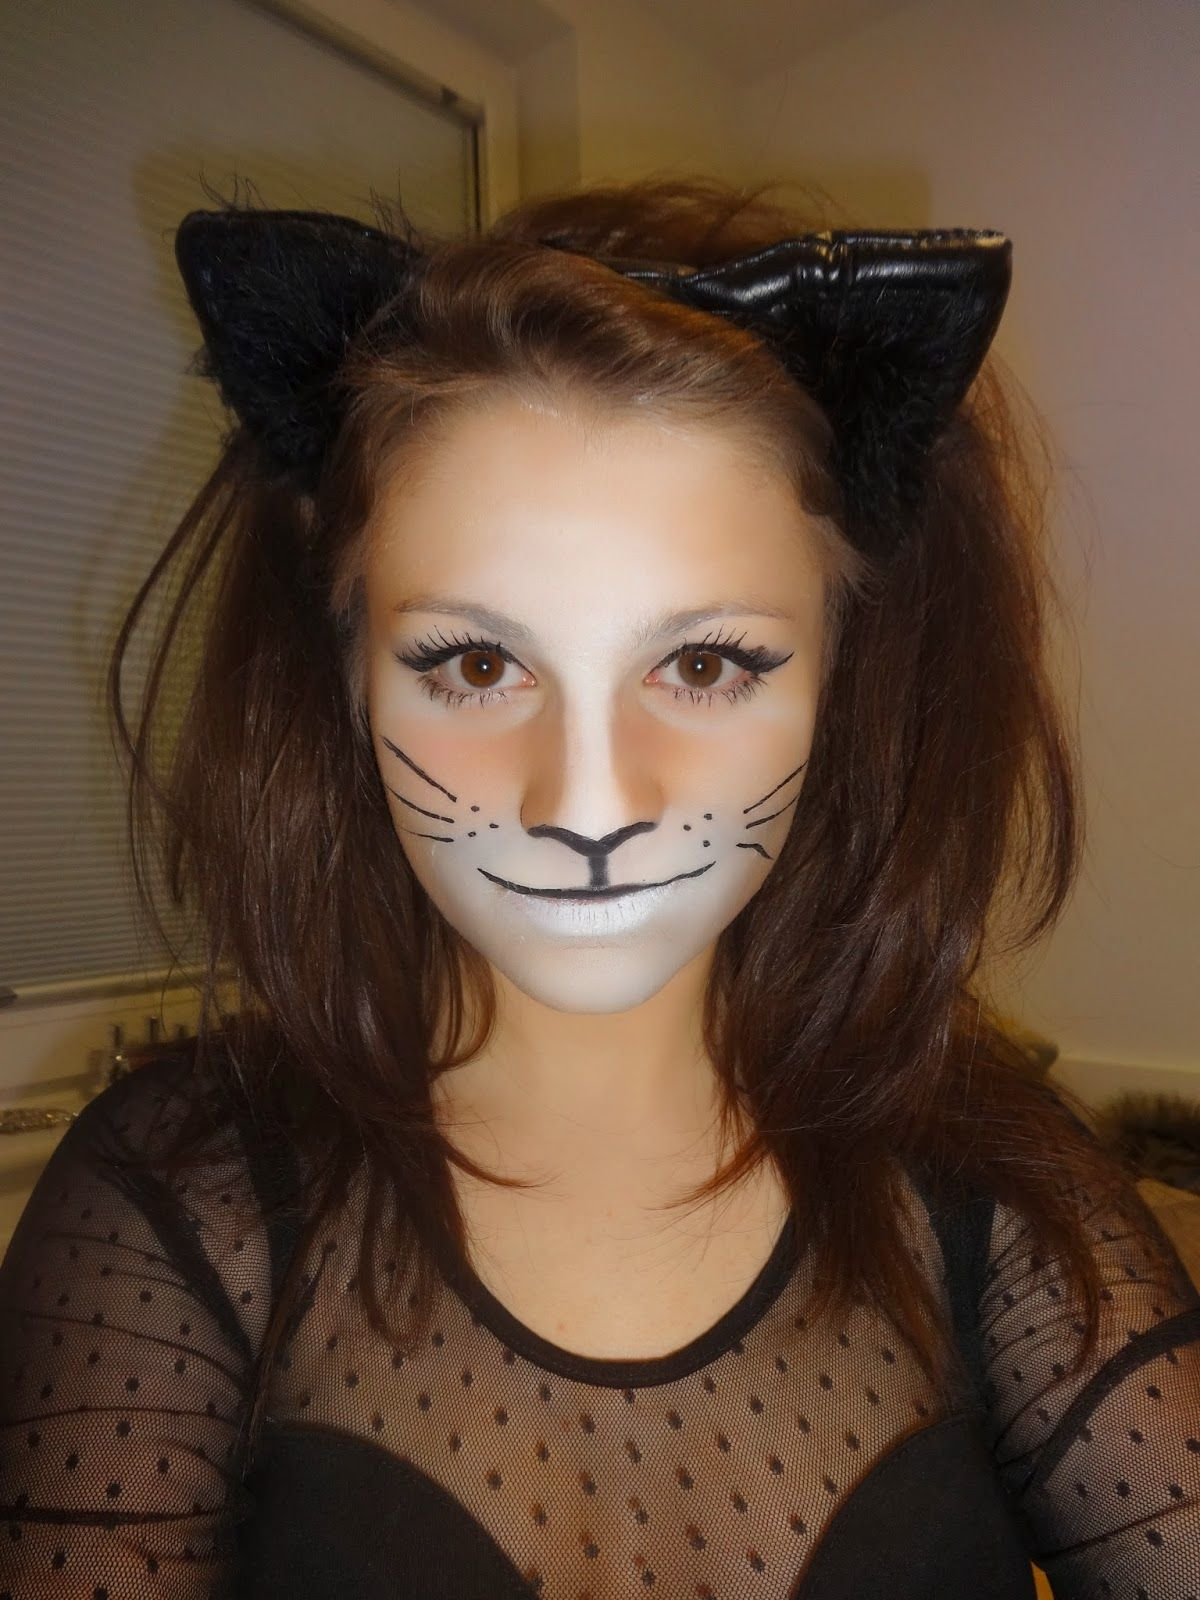 Cat Whiskers PNG, Transparent Cat Whiskers PNG Image... - PNGkey